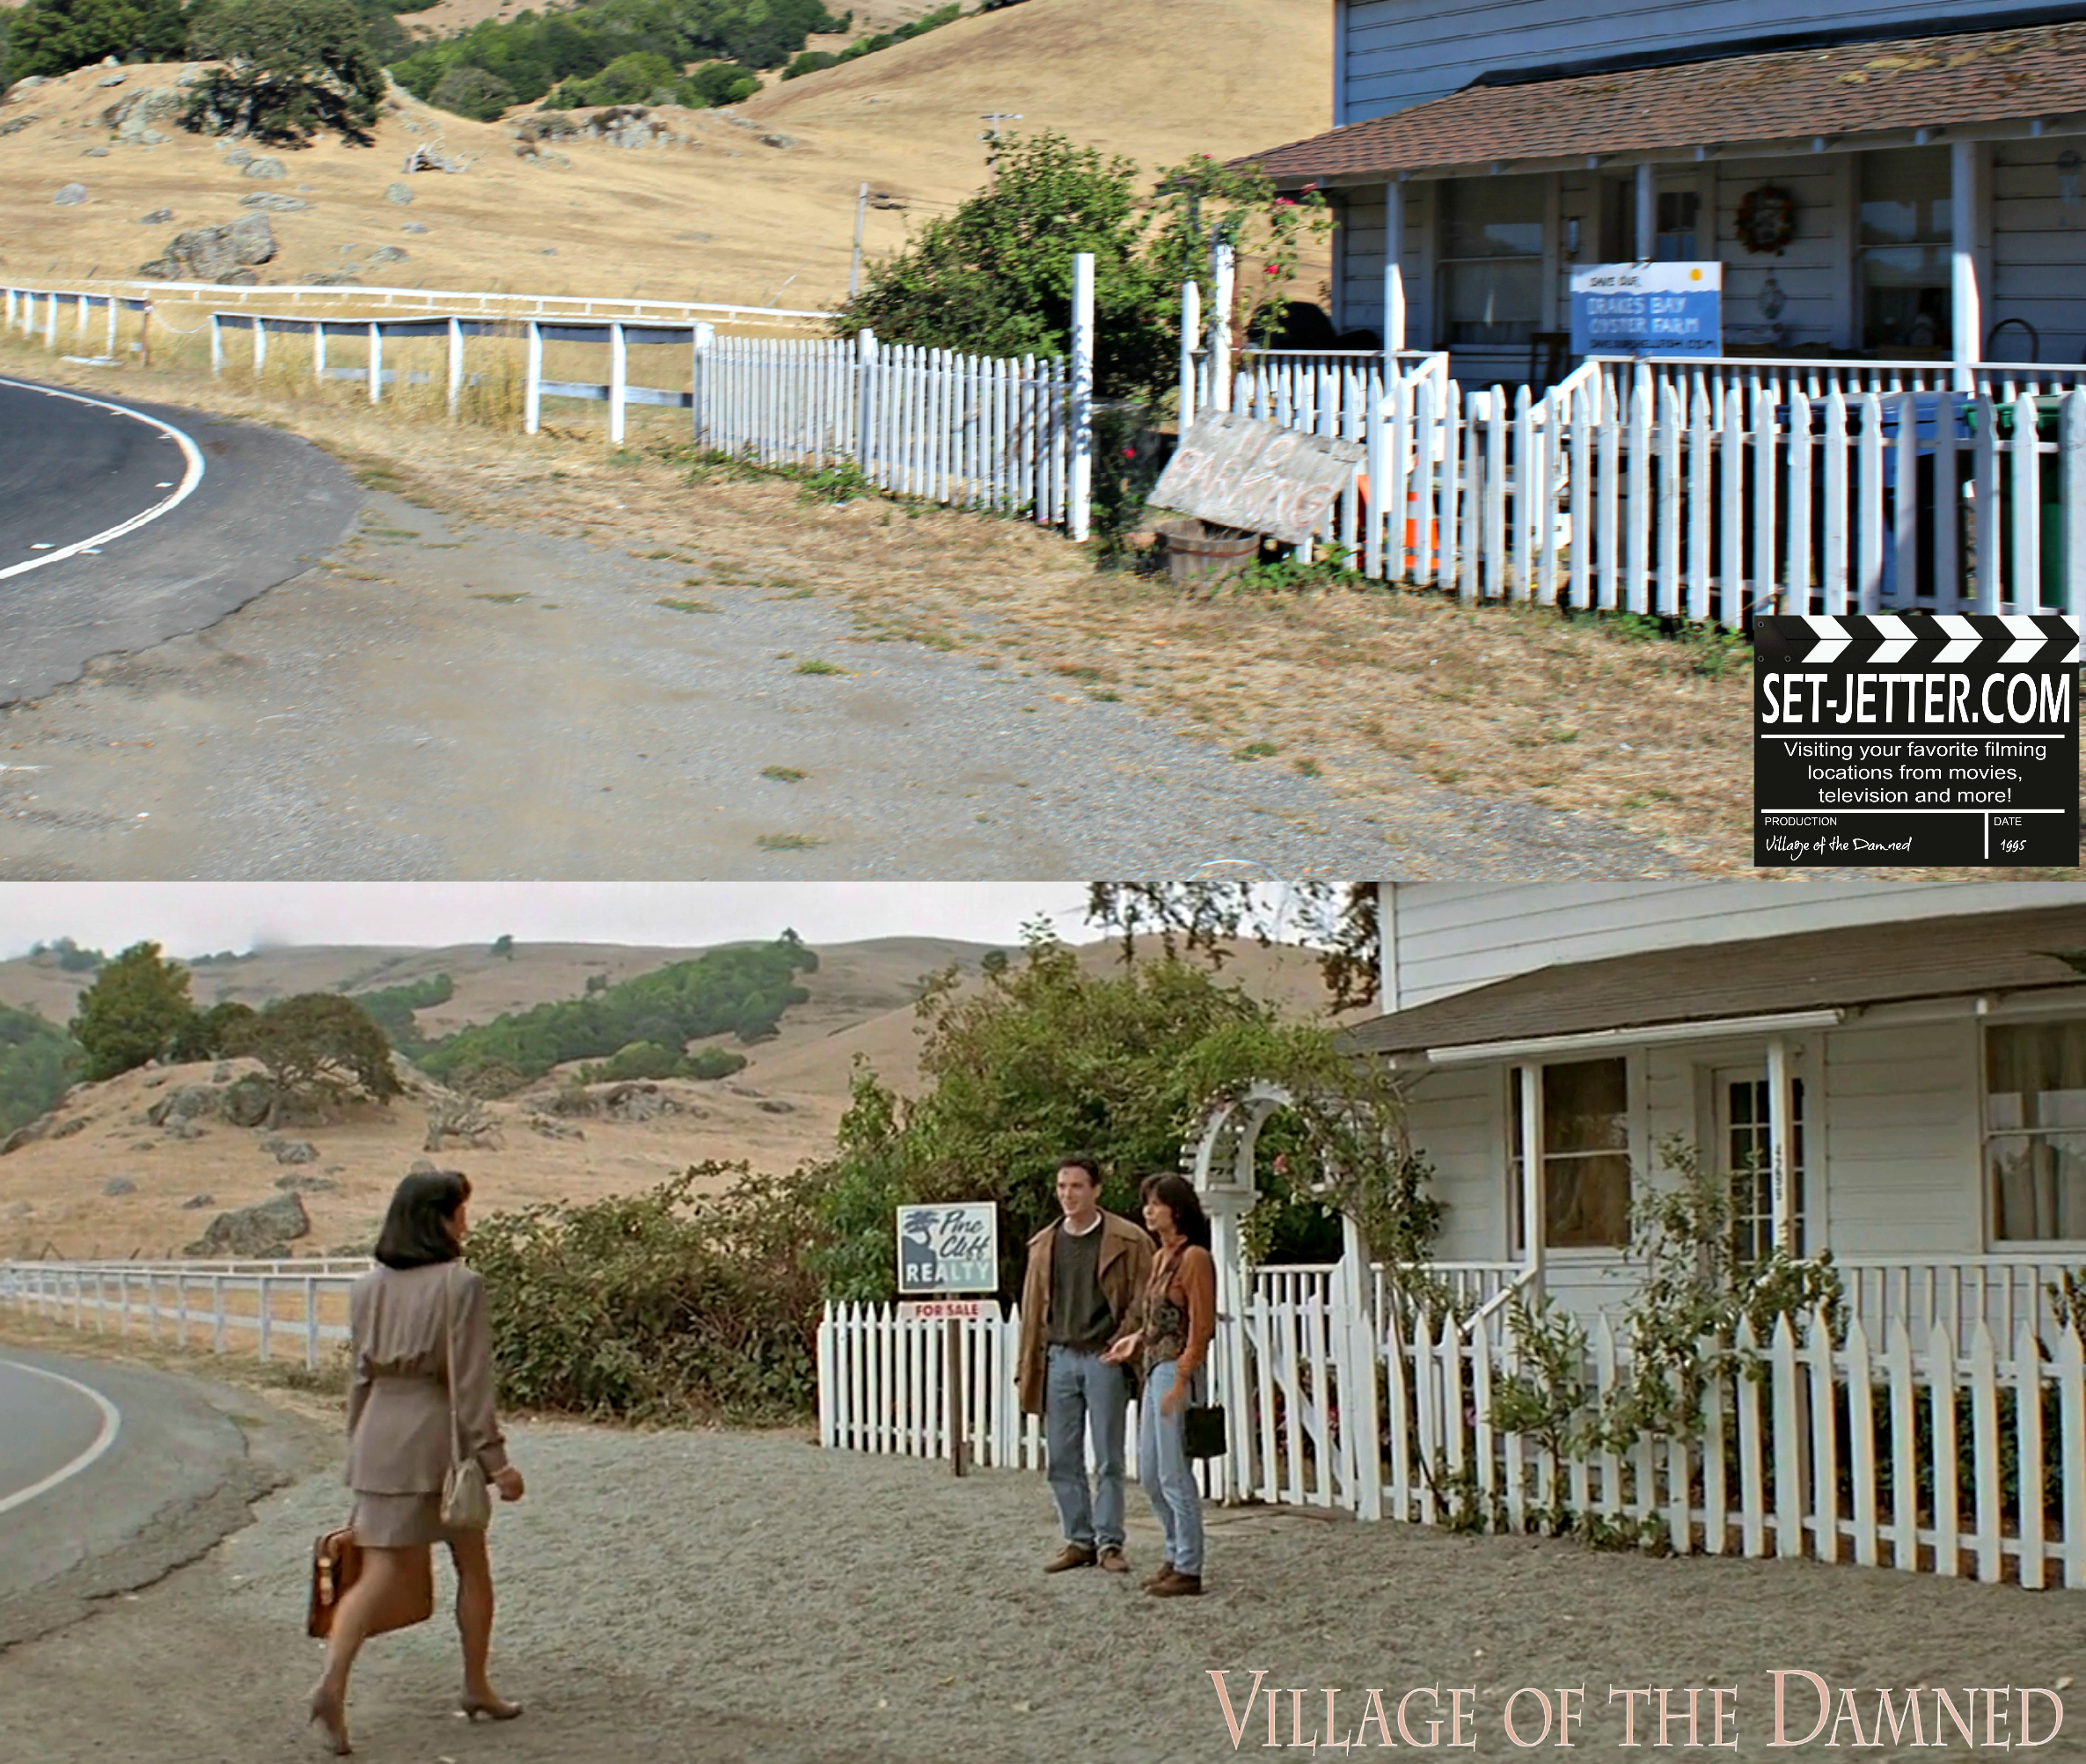 Village of the Damned comparison 43.jpg